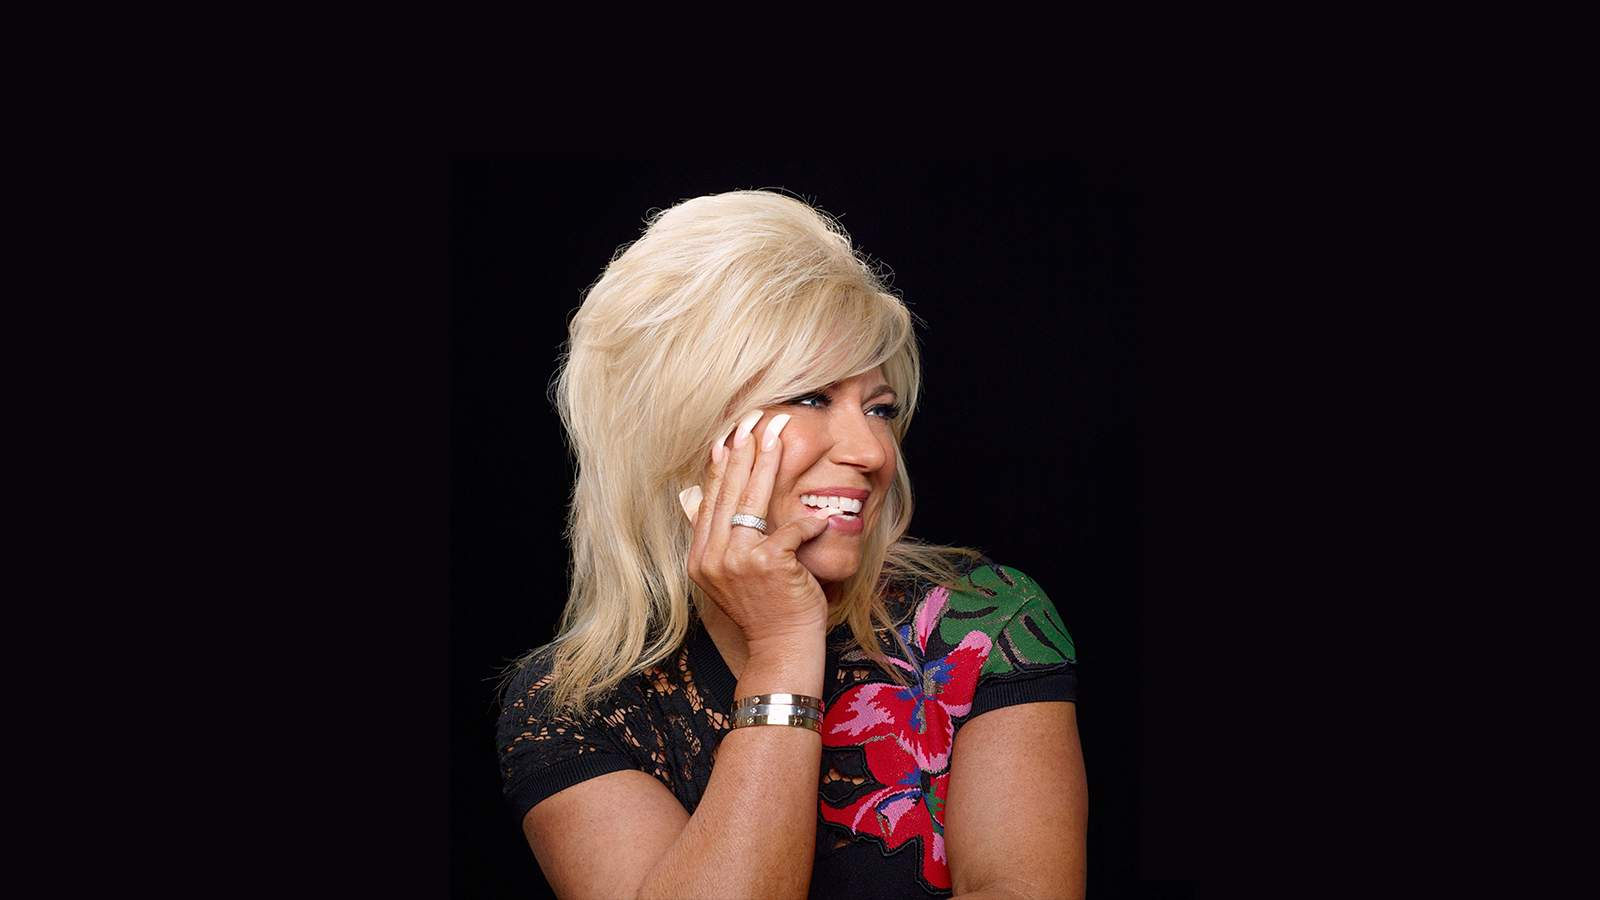 Theresa Caputo (Rescheduled from 6/14/2020, 10/9/2020)